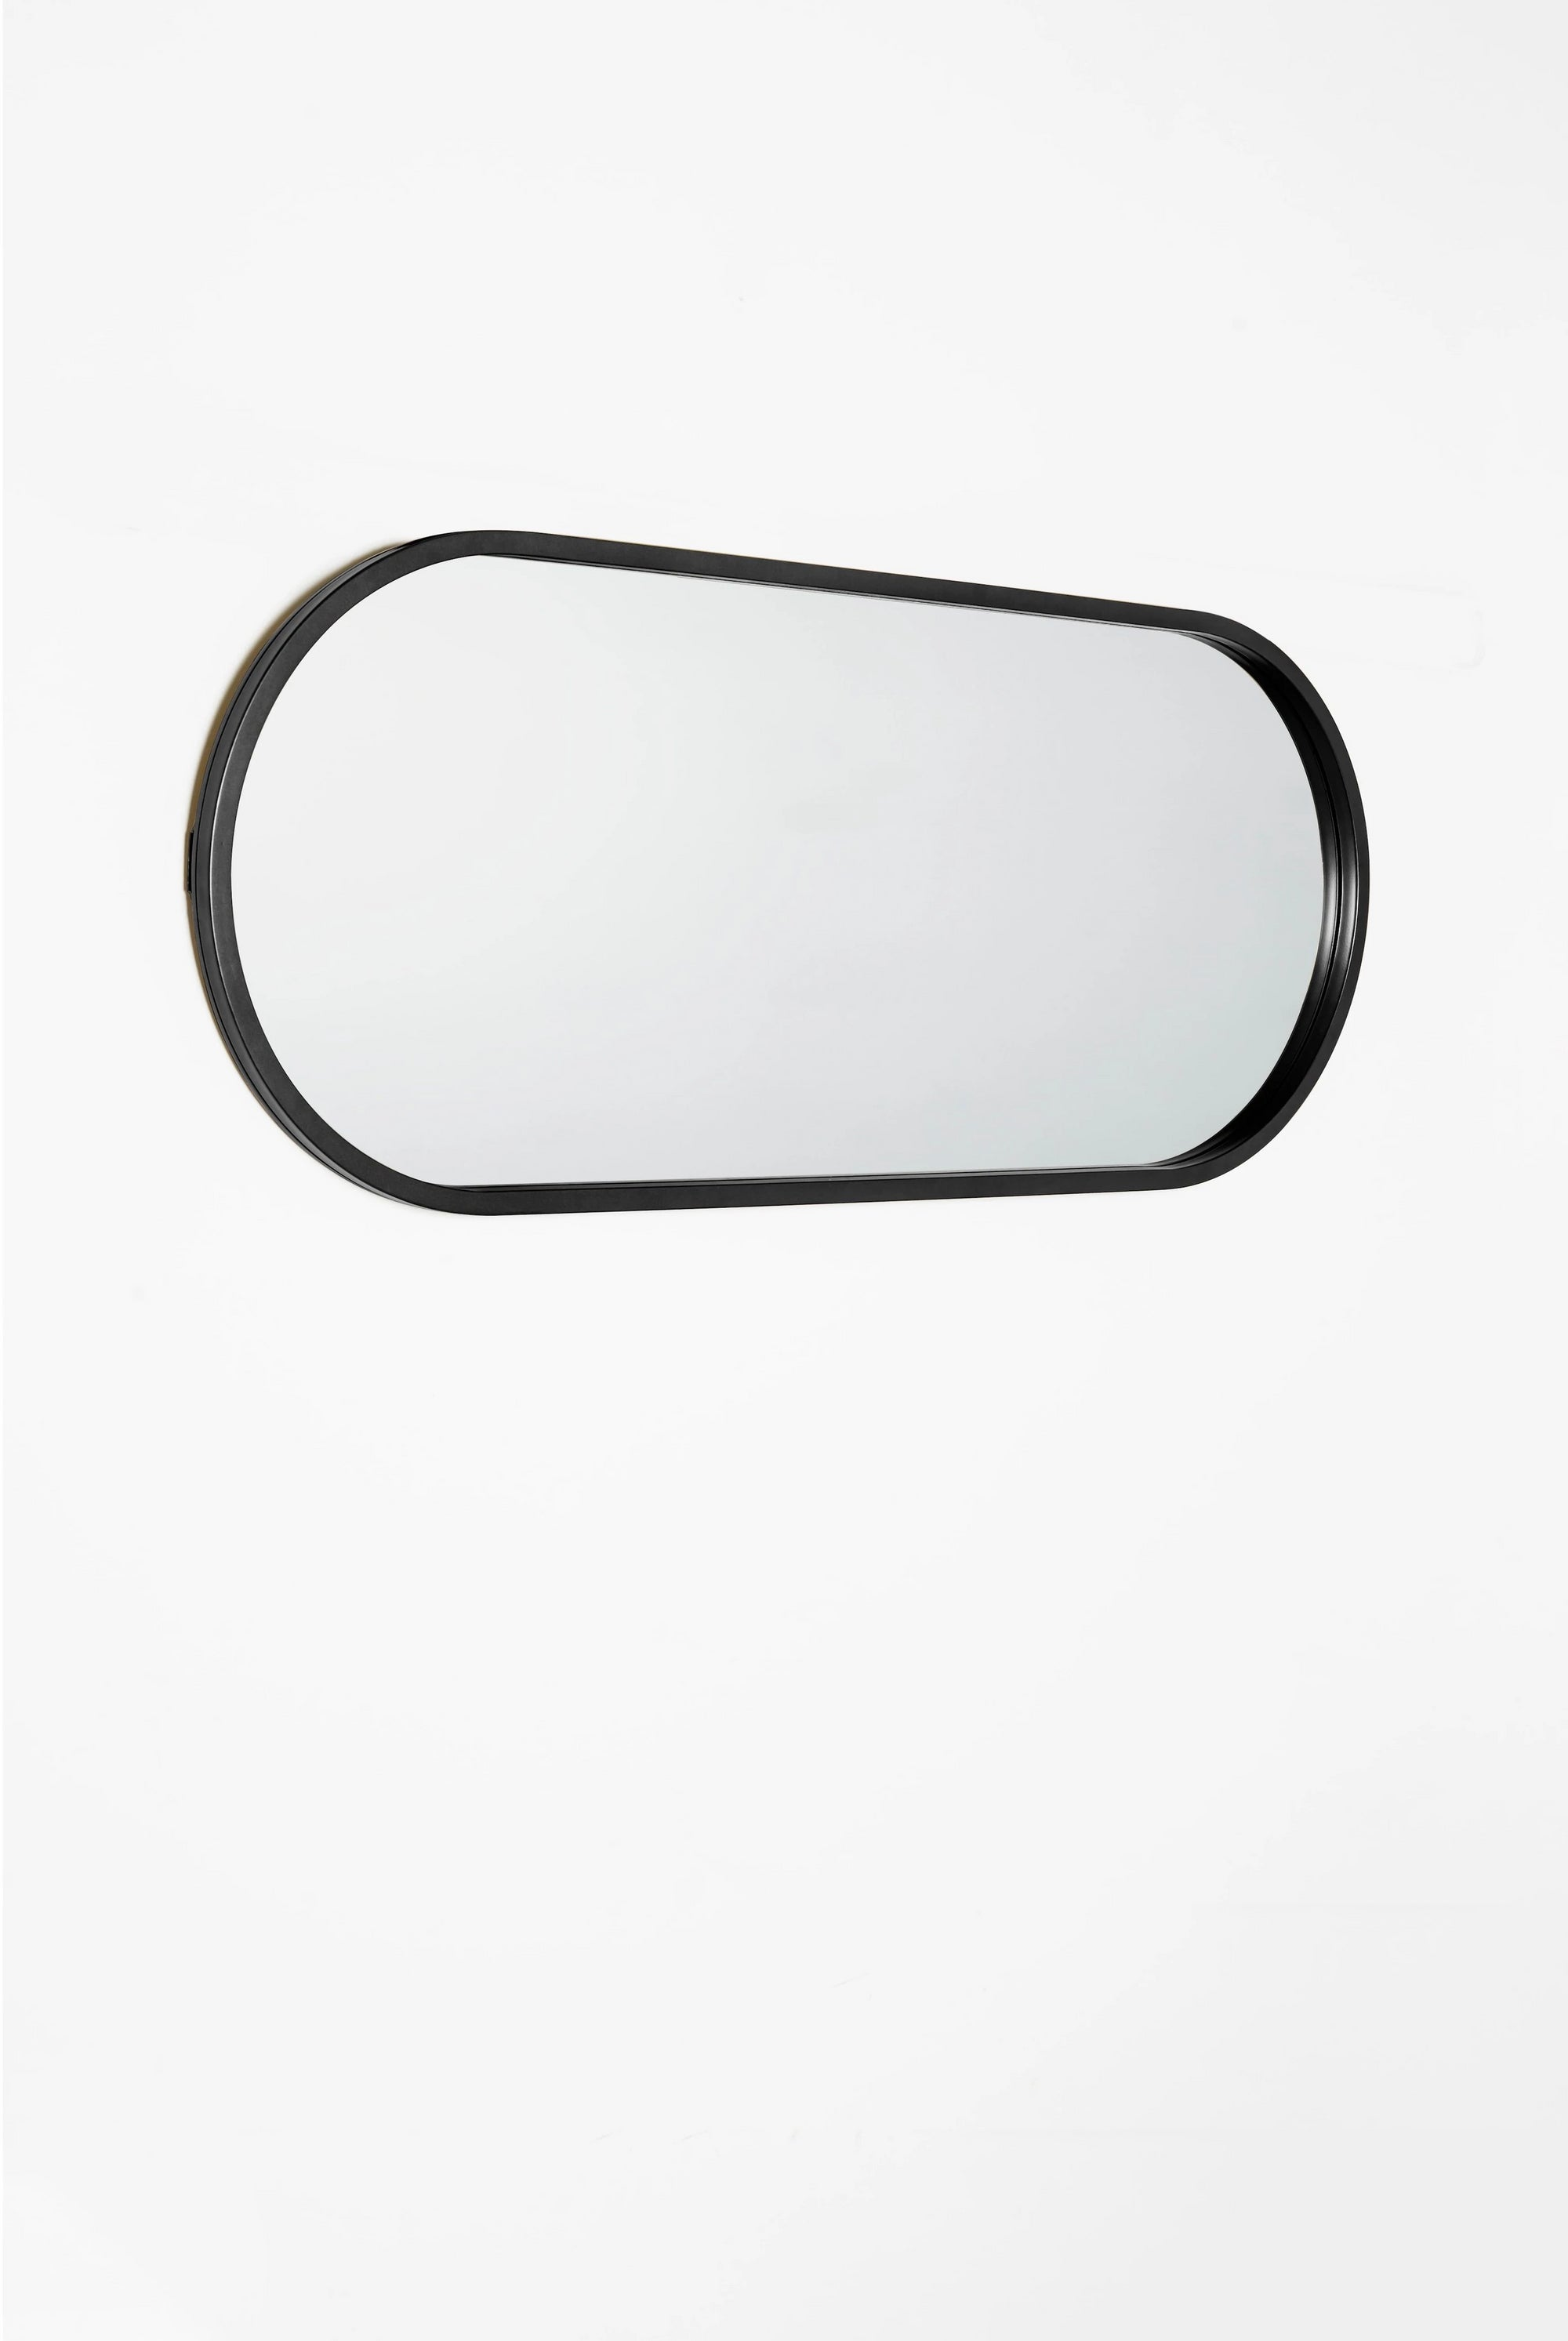 Pill Popper Mirror Mirror Black Whom. Home